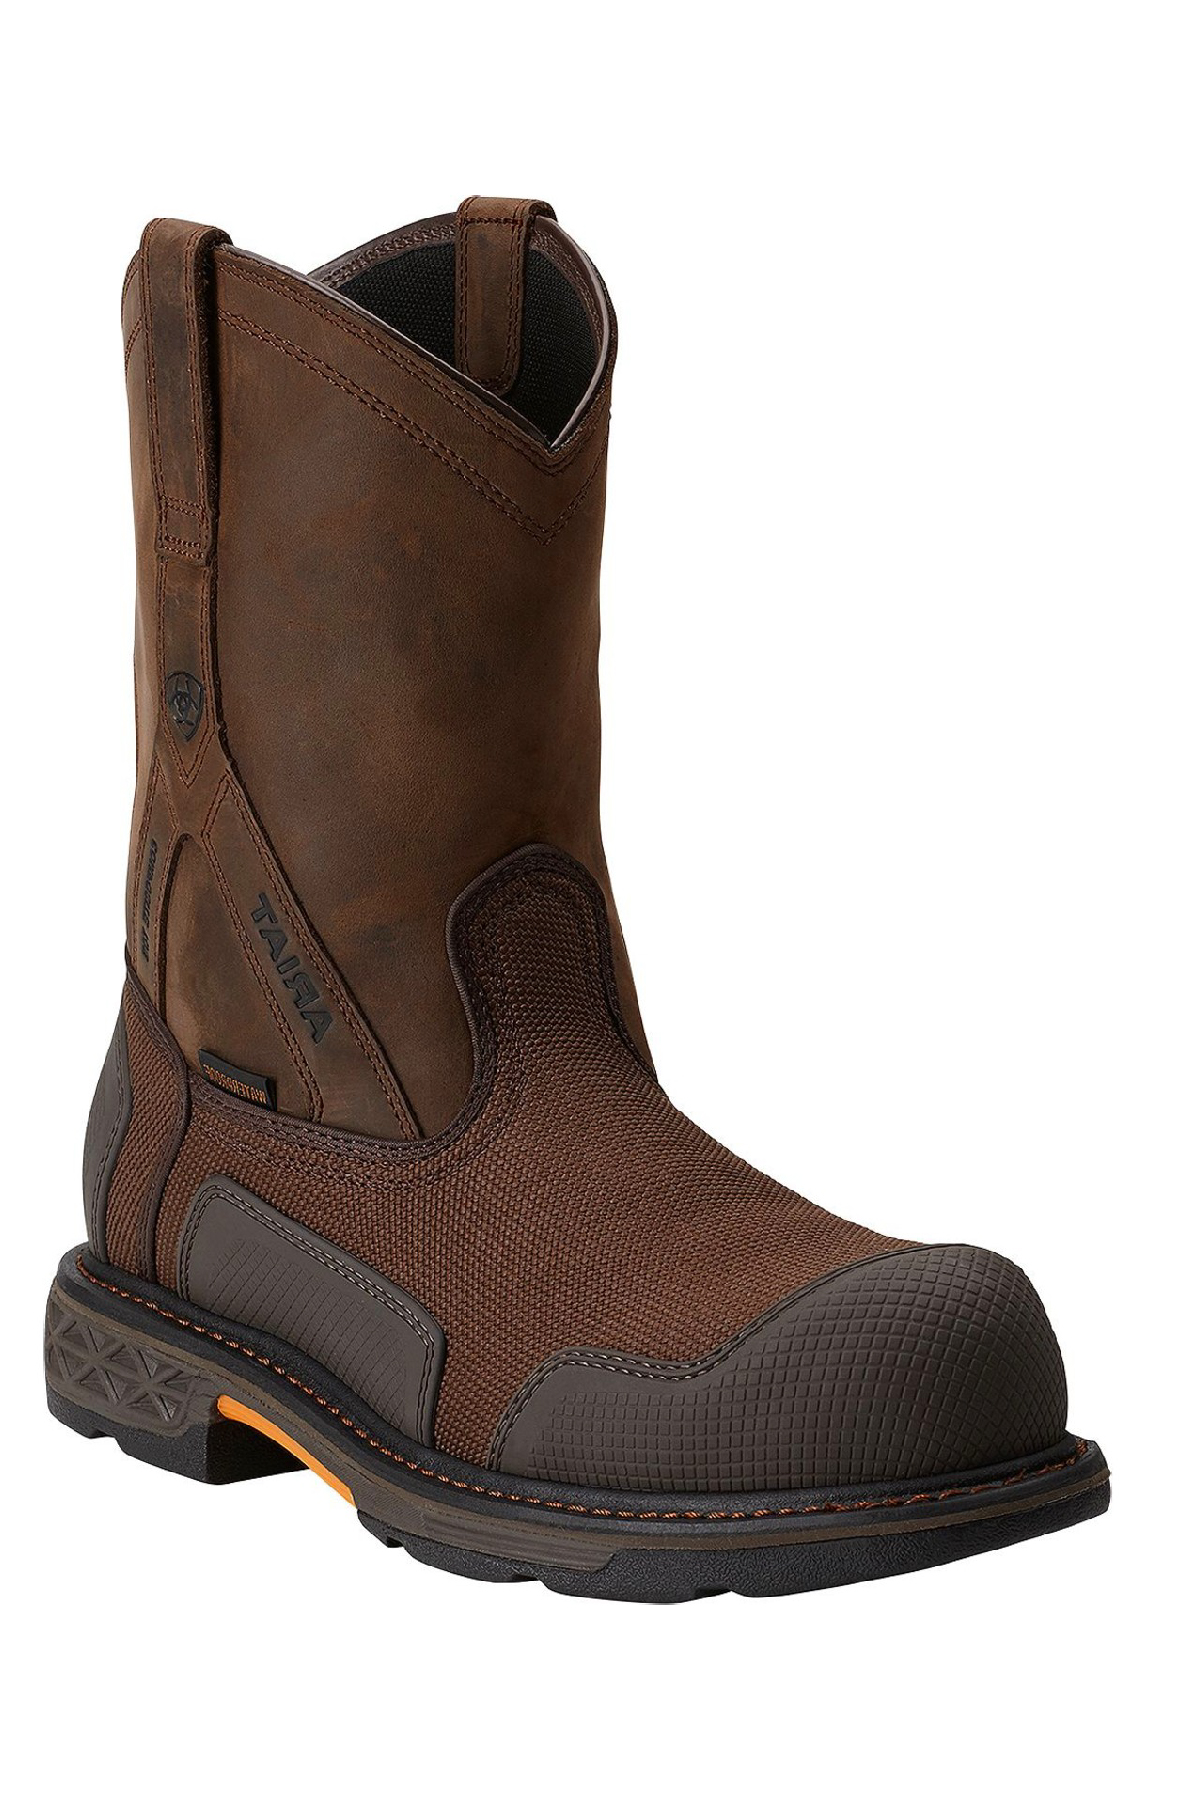 Ariat Overdrive XTR H2O Pull-On Work Boots